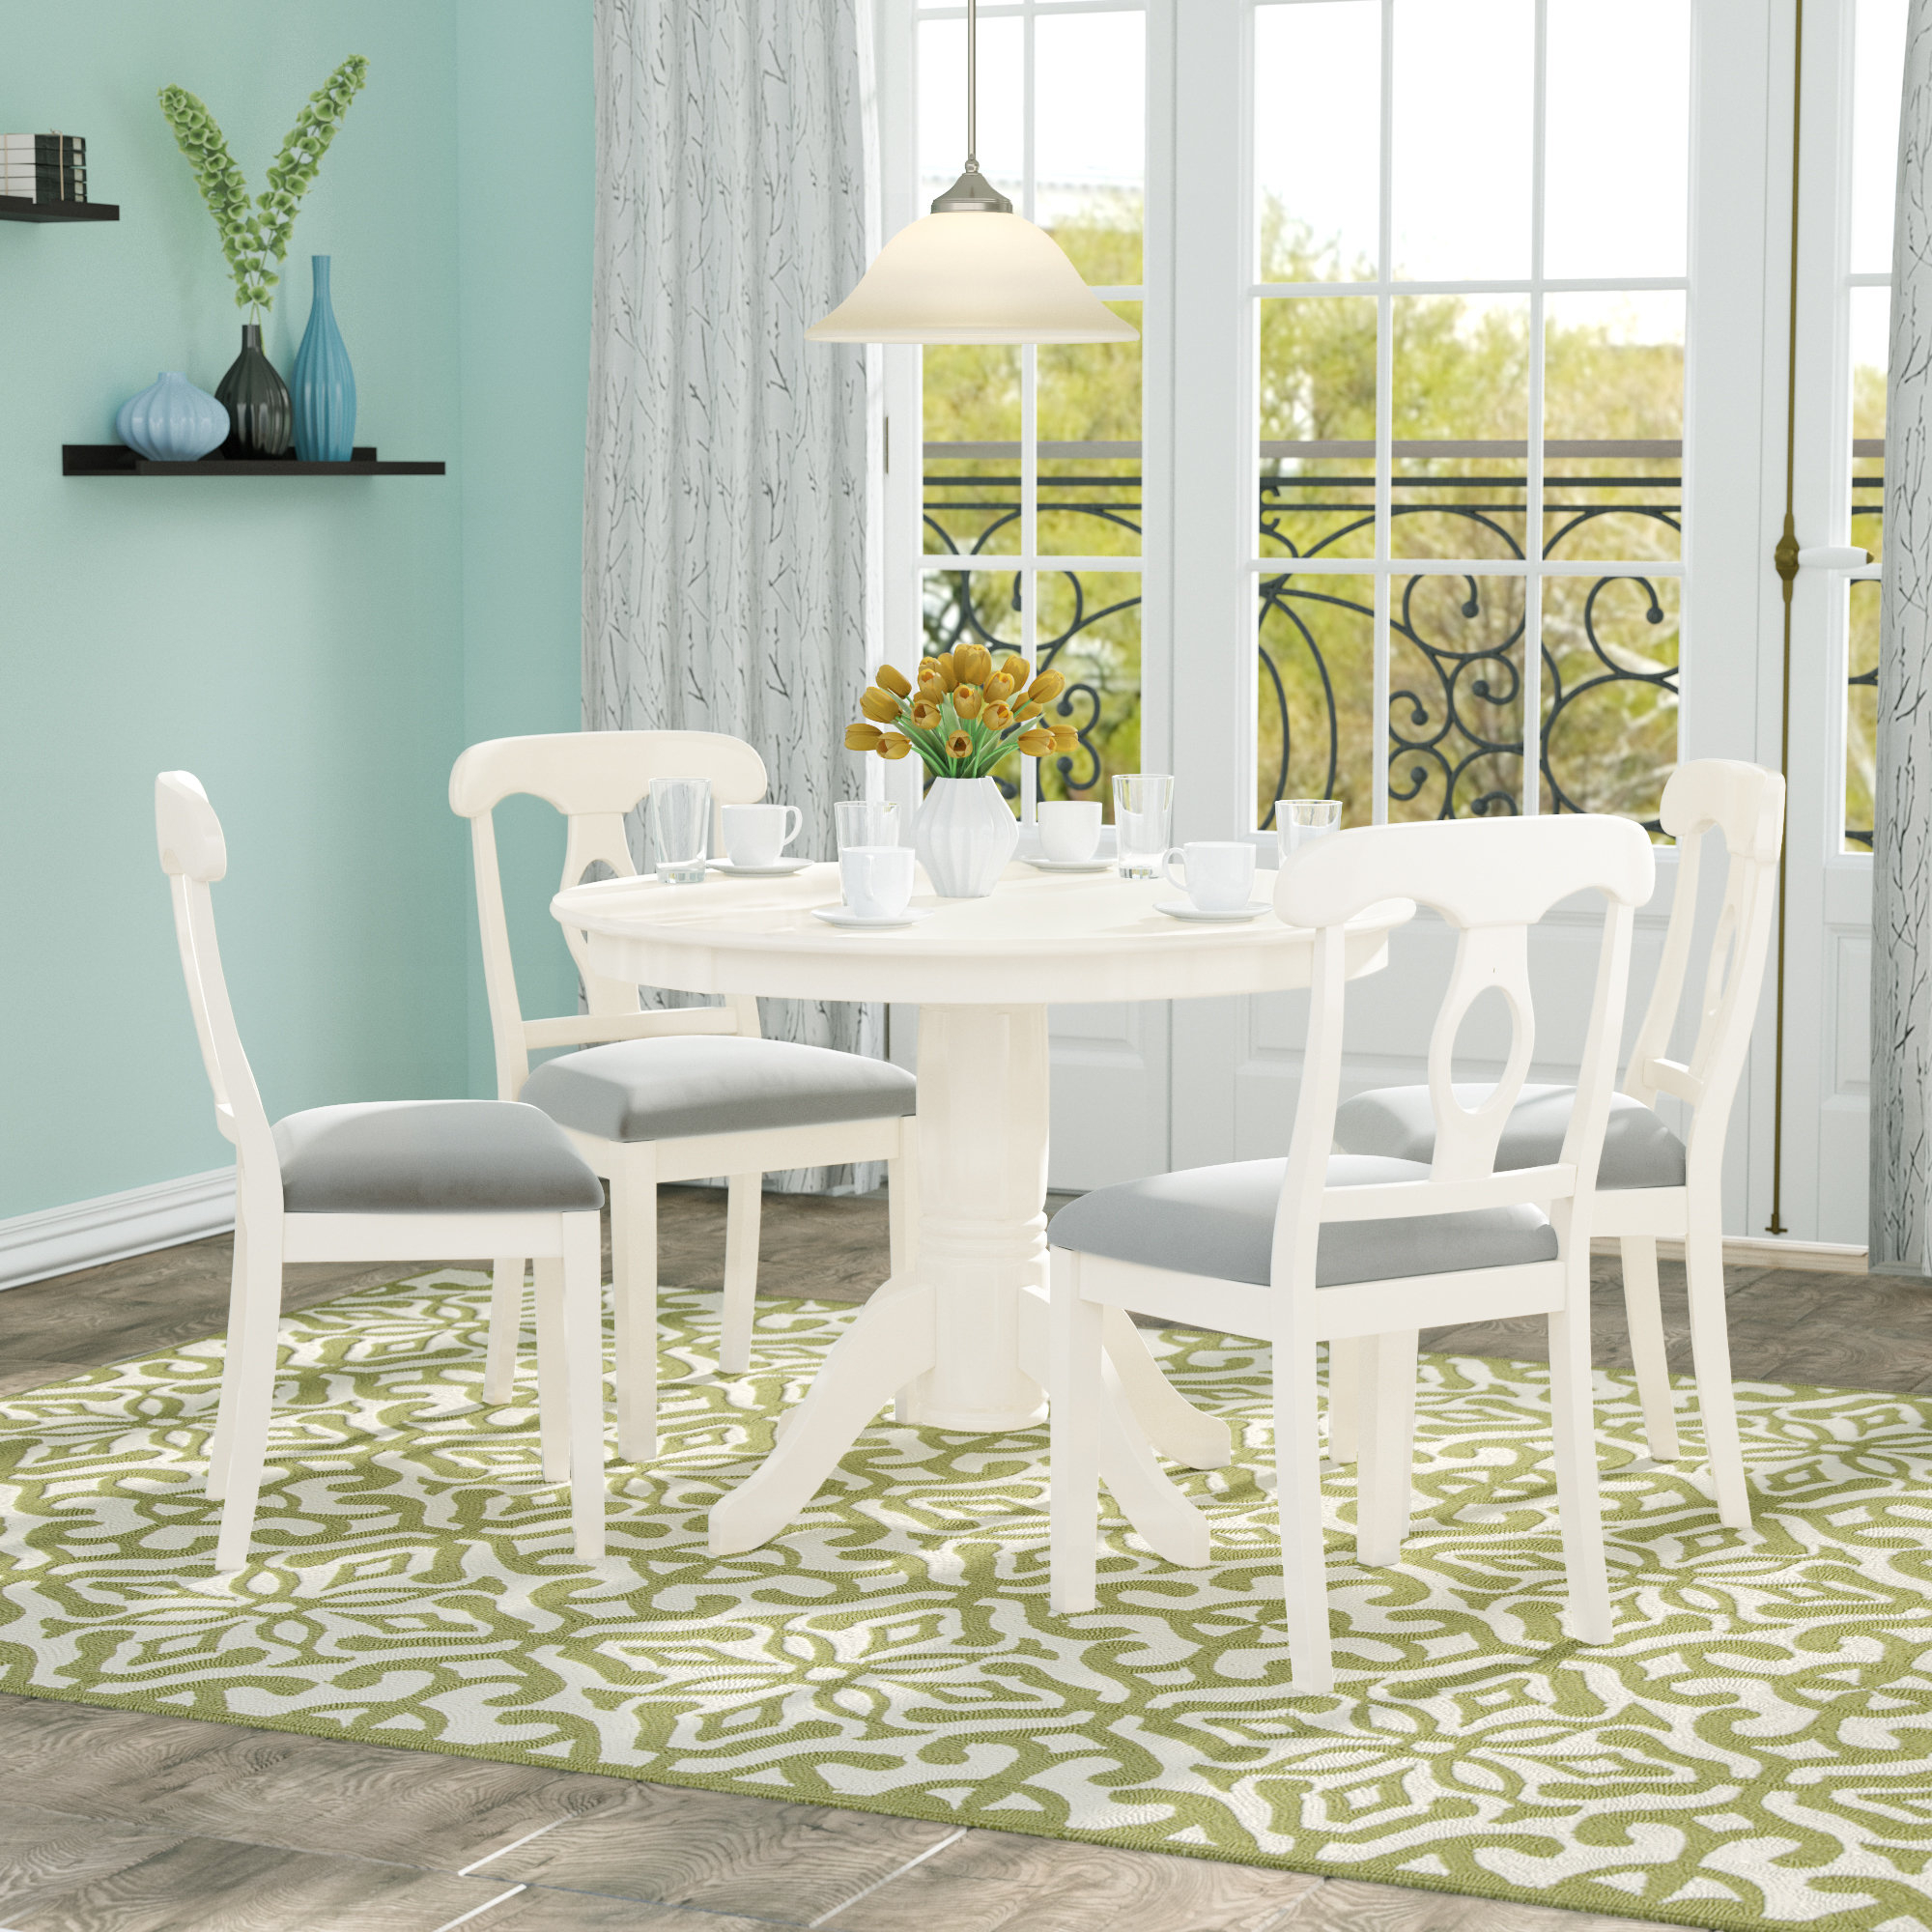 Adda 5 Piece Dining Set In Most Recent 5 Piece Dining Sets (View 11 of 20)